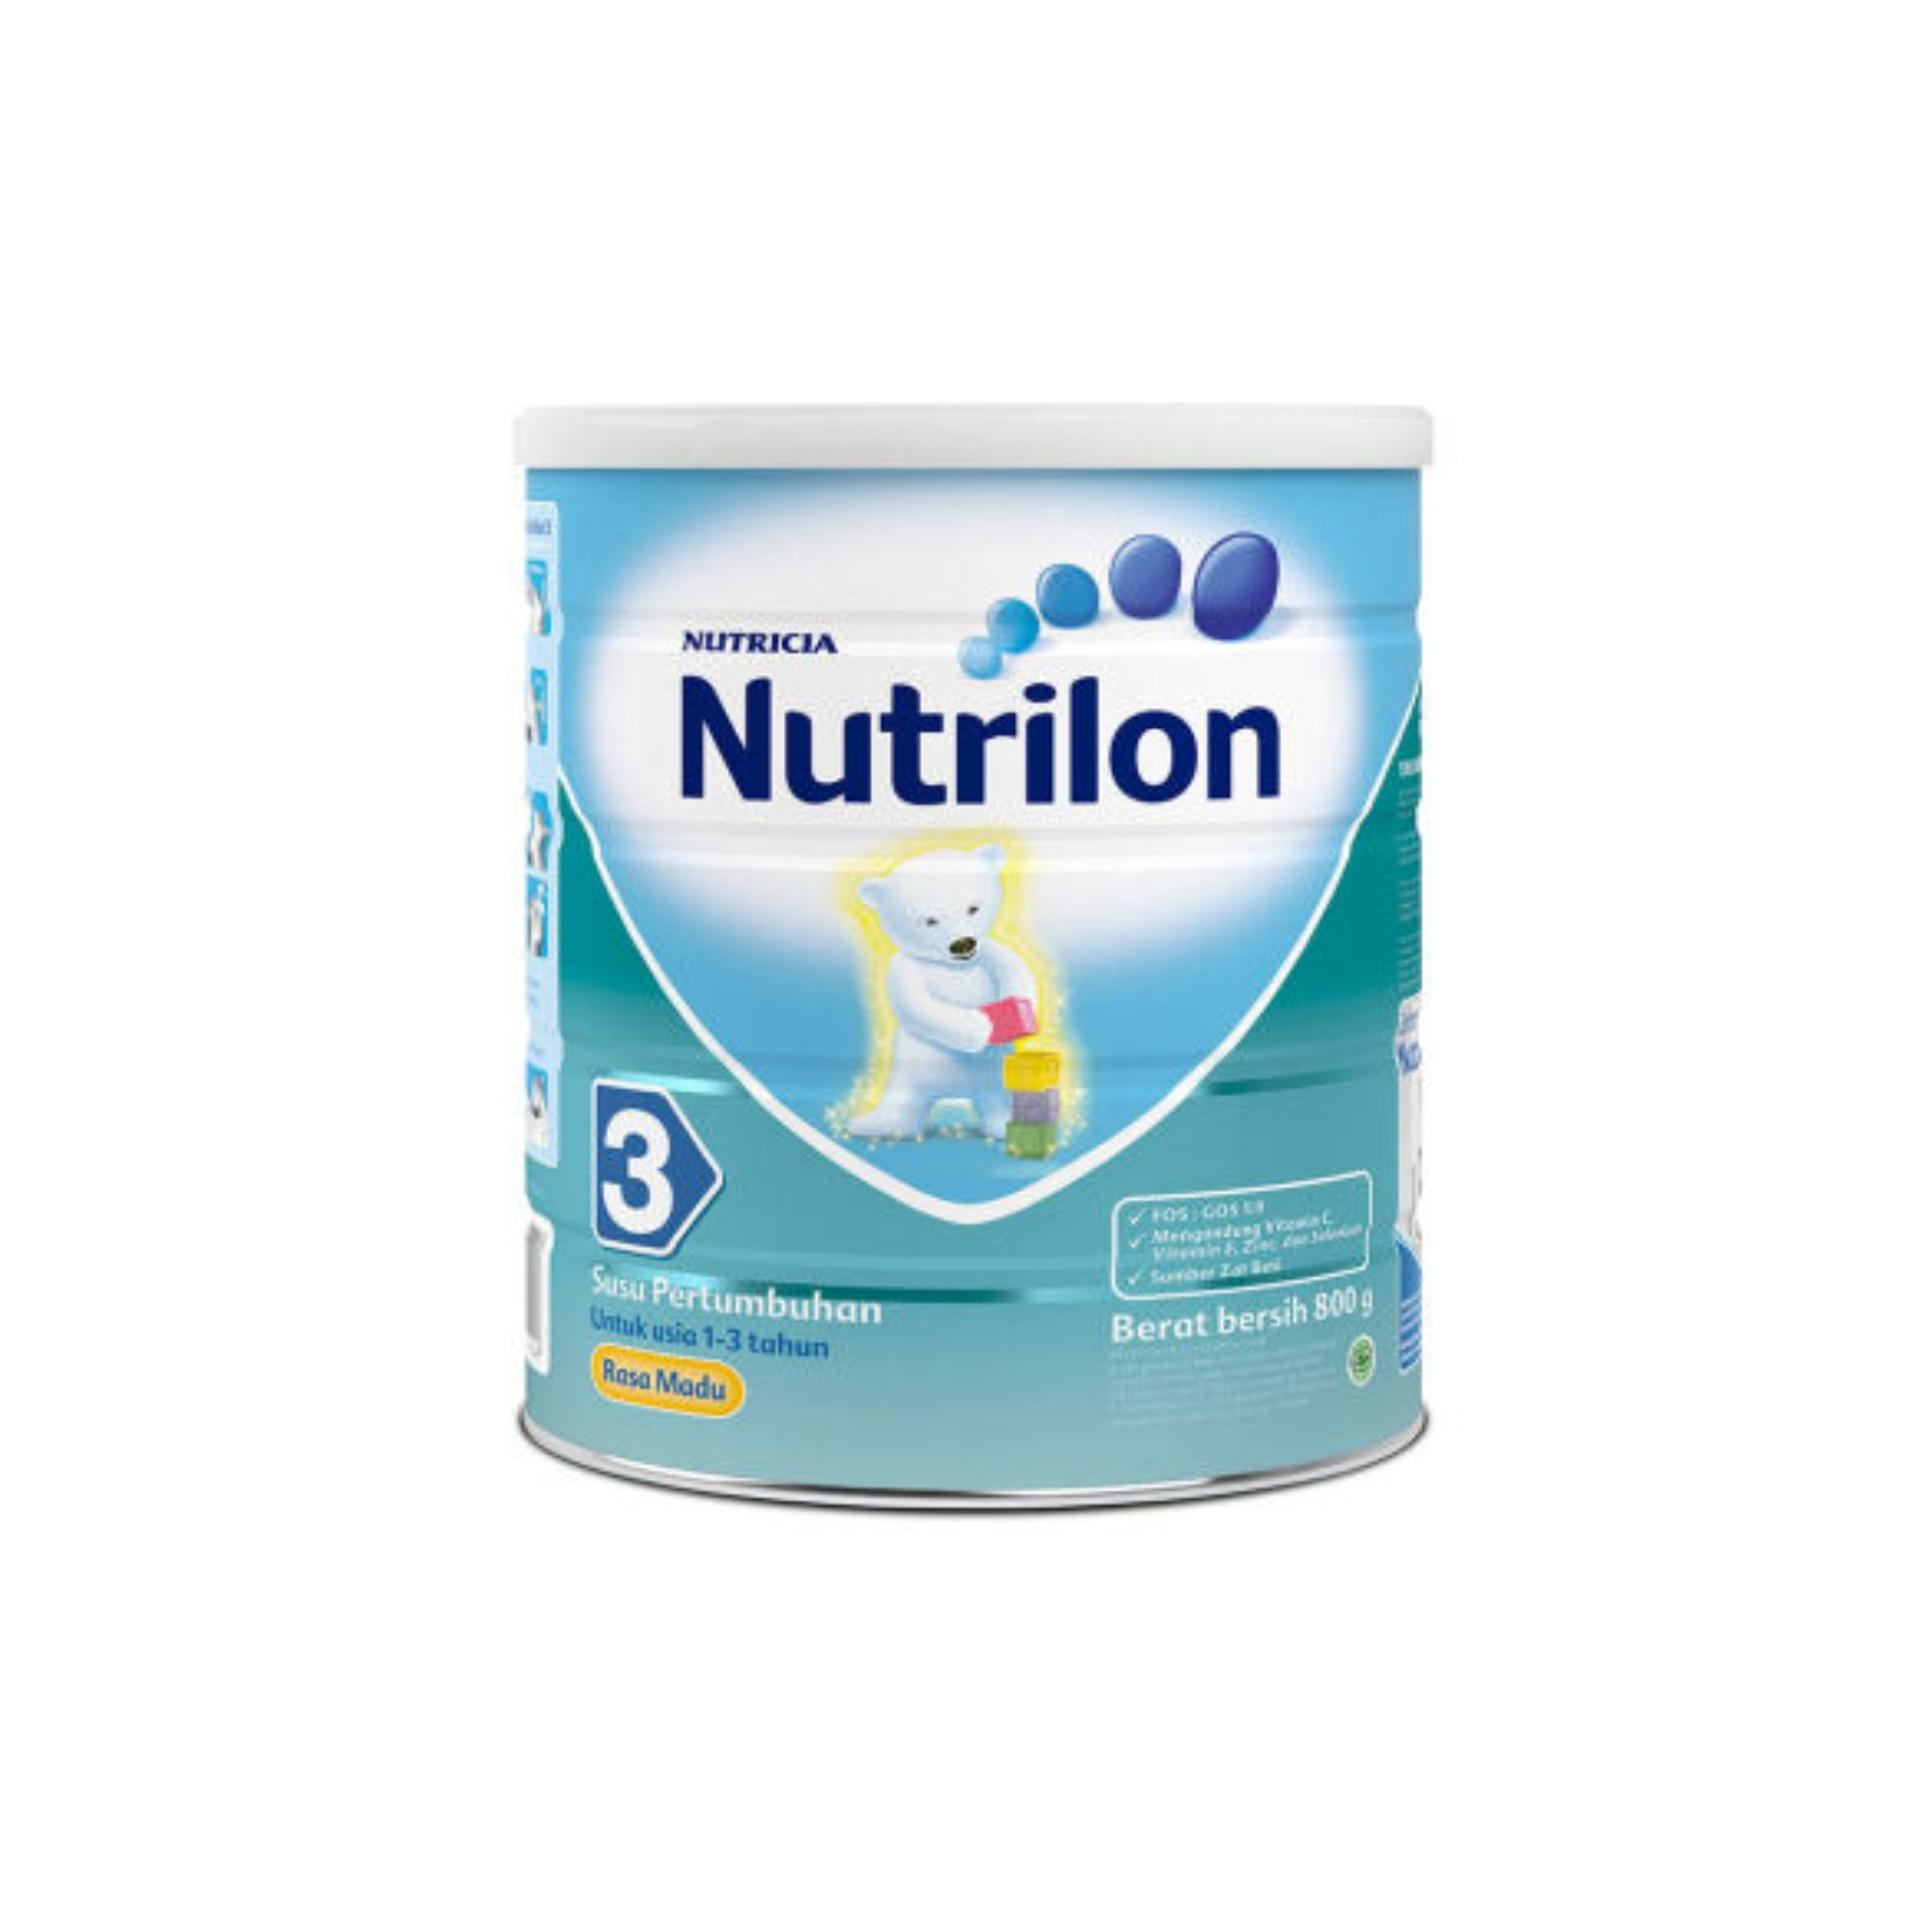 NUTRILON Regular 3 Madu Susu Tin 800g / 800 g